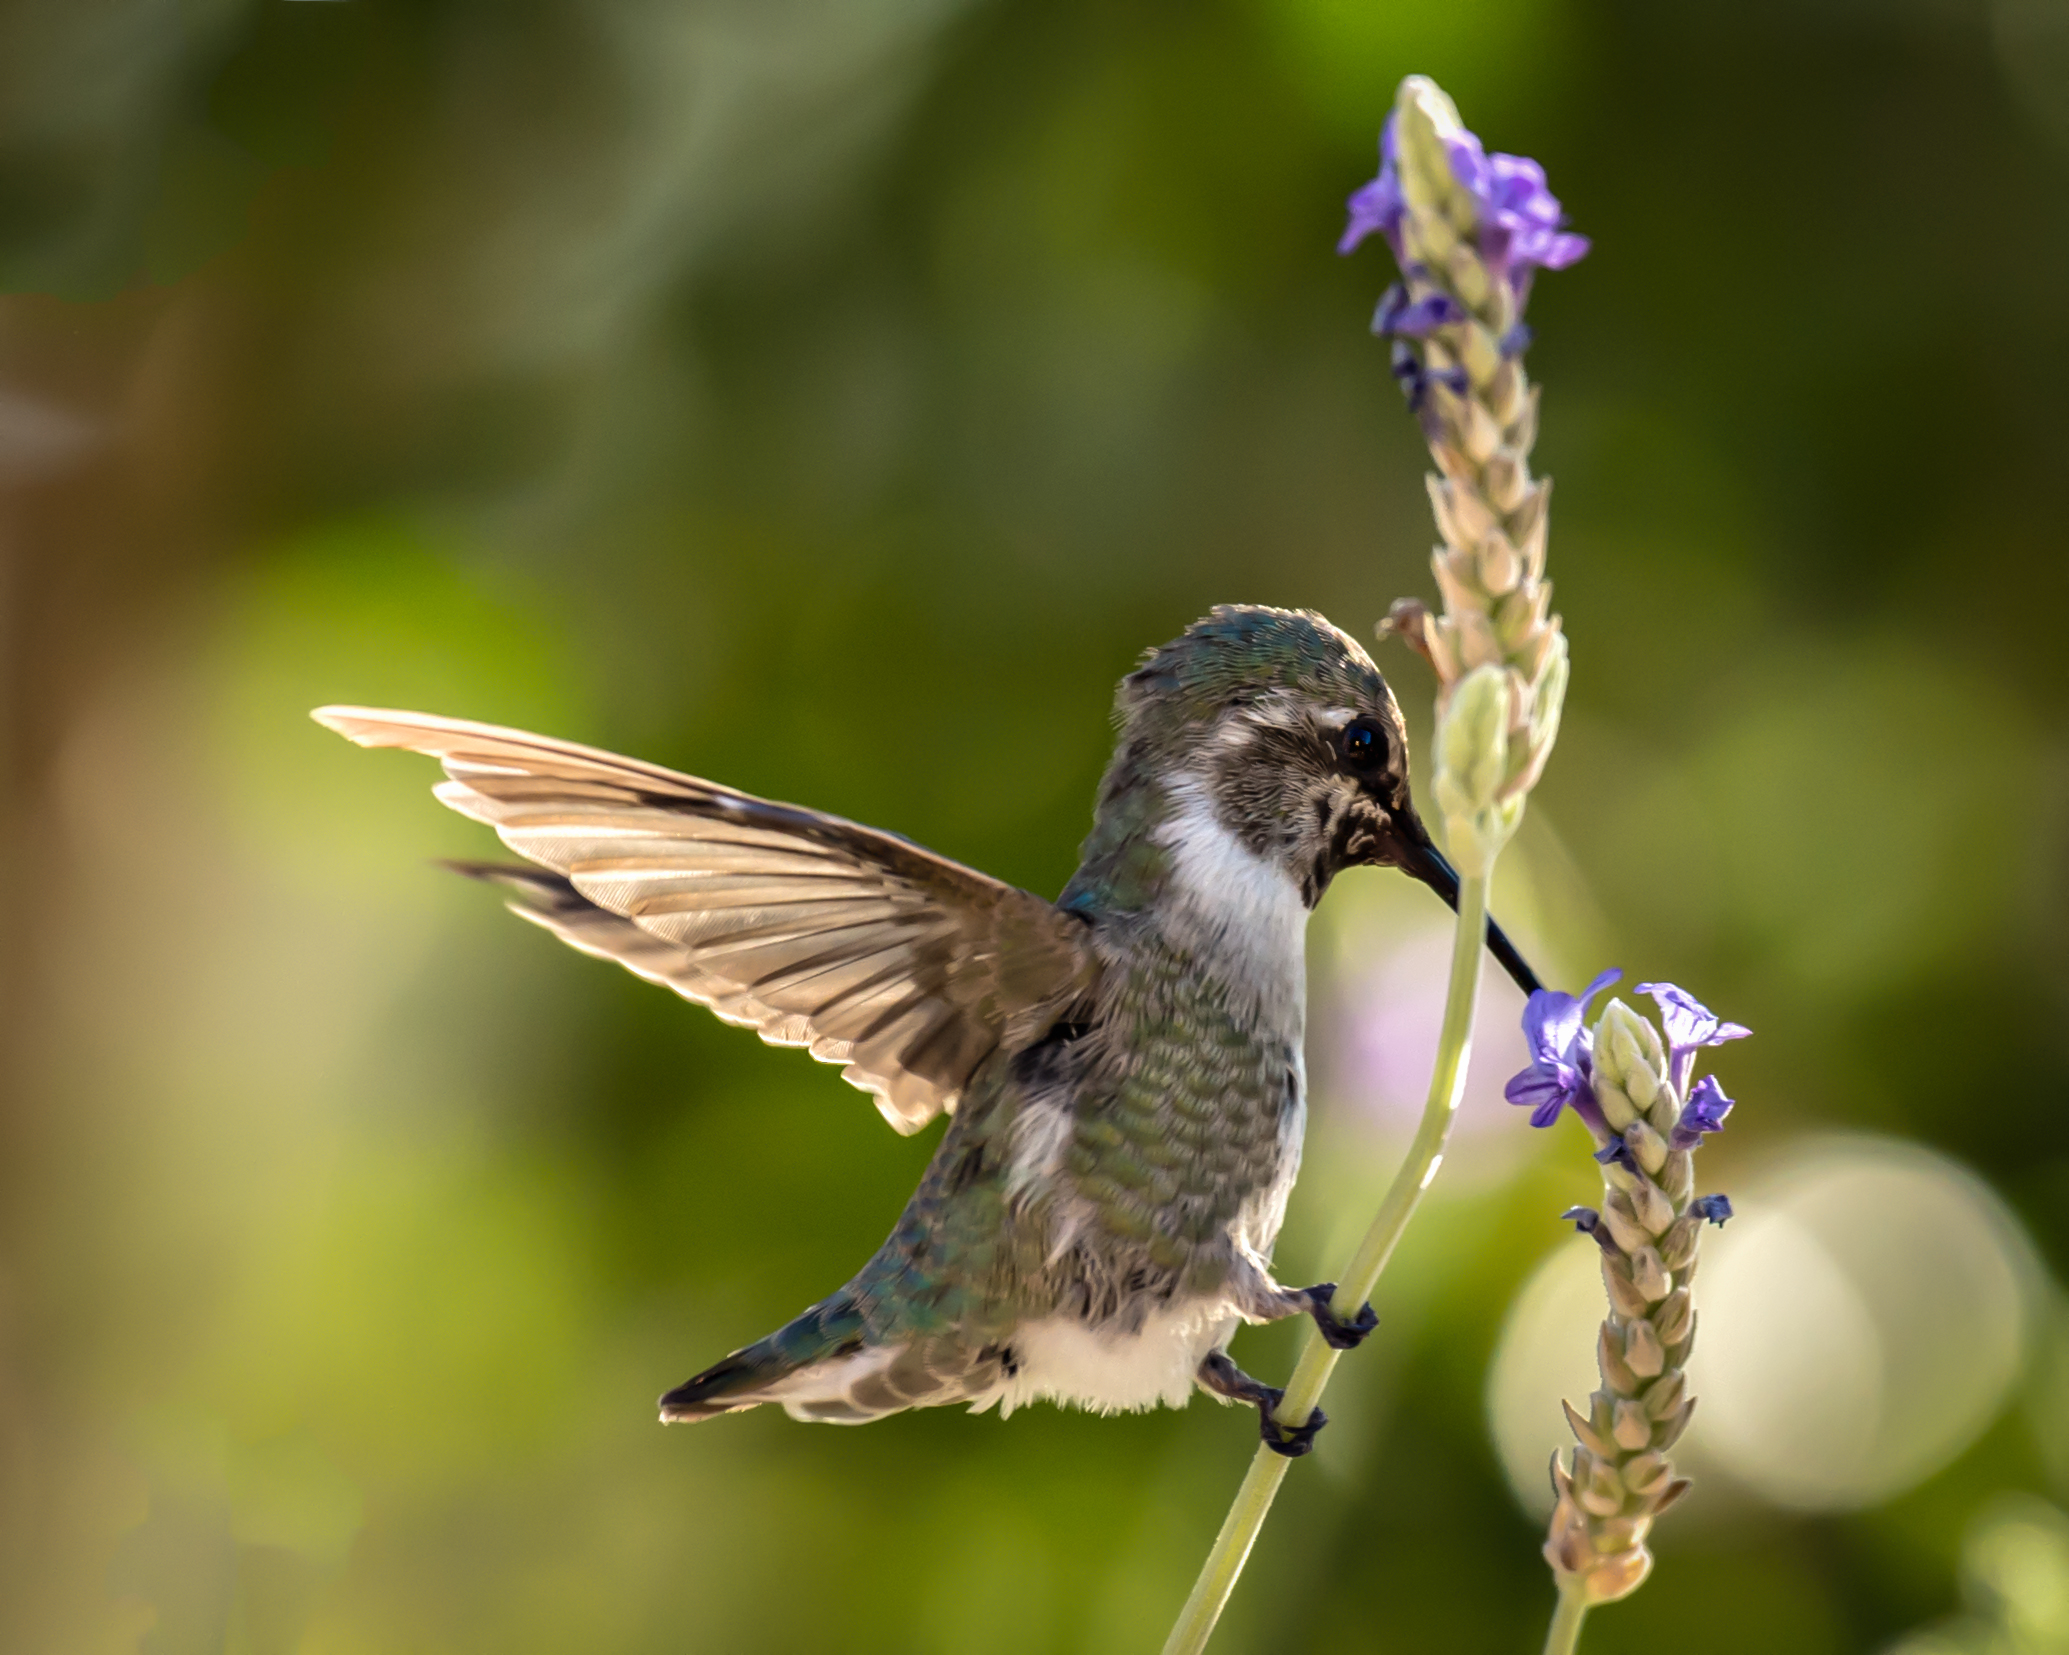 API_Hummingbird-Labor-Day_ASE5867-Edit.jpg